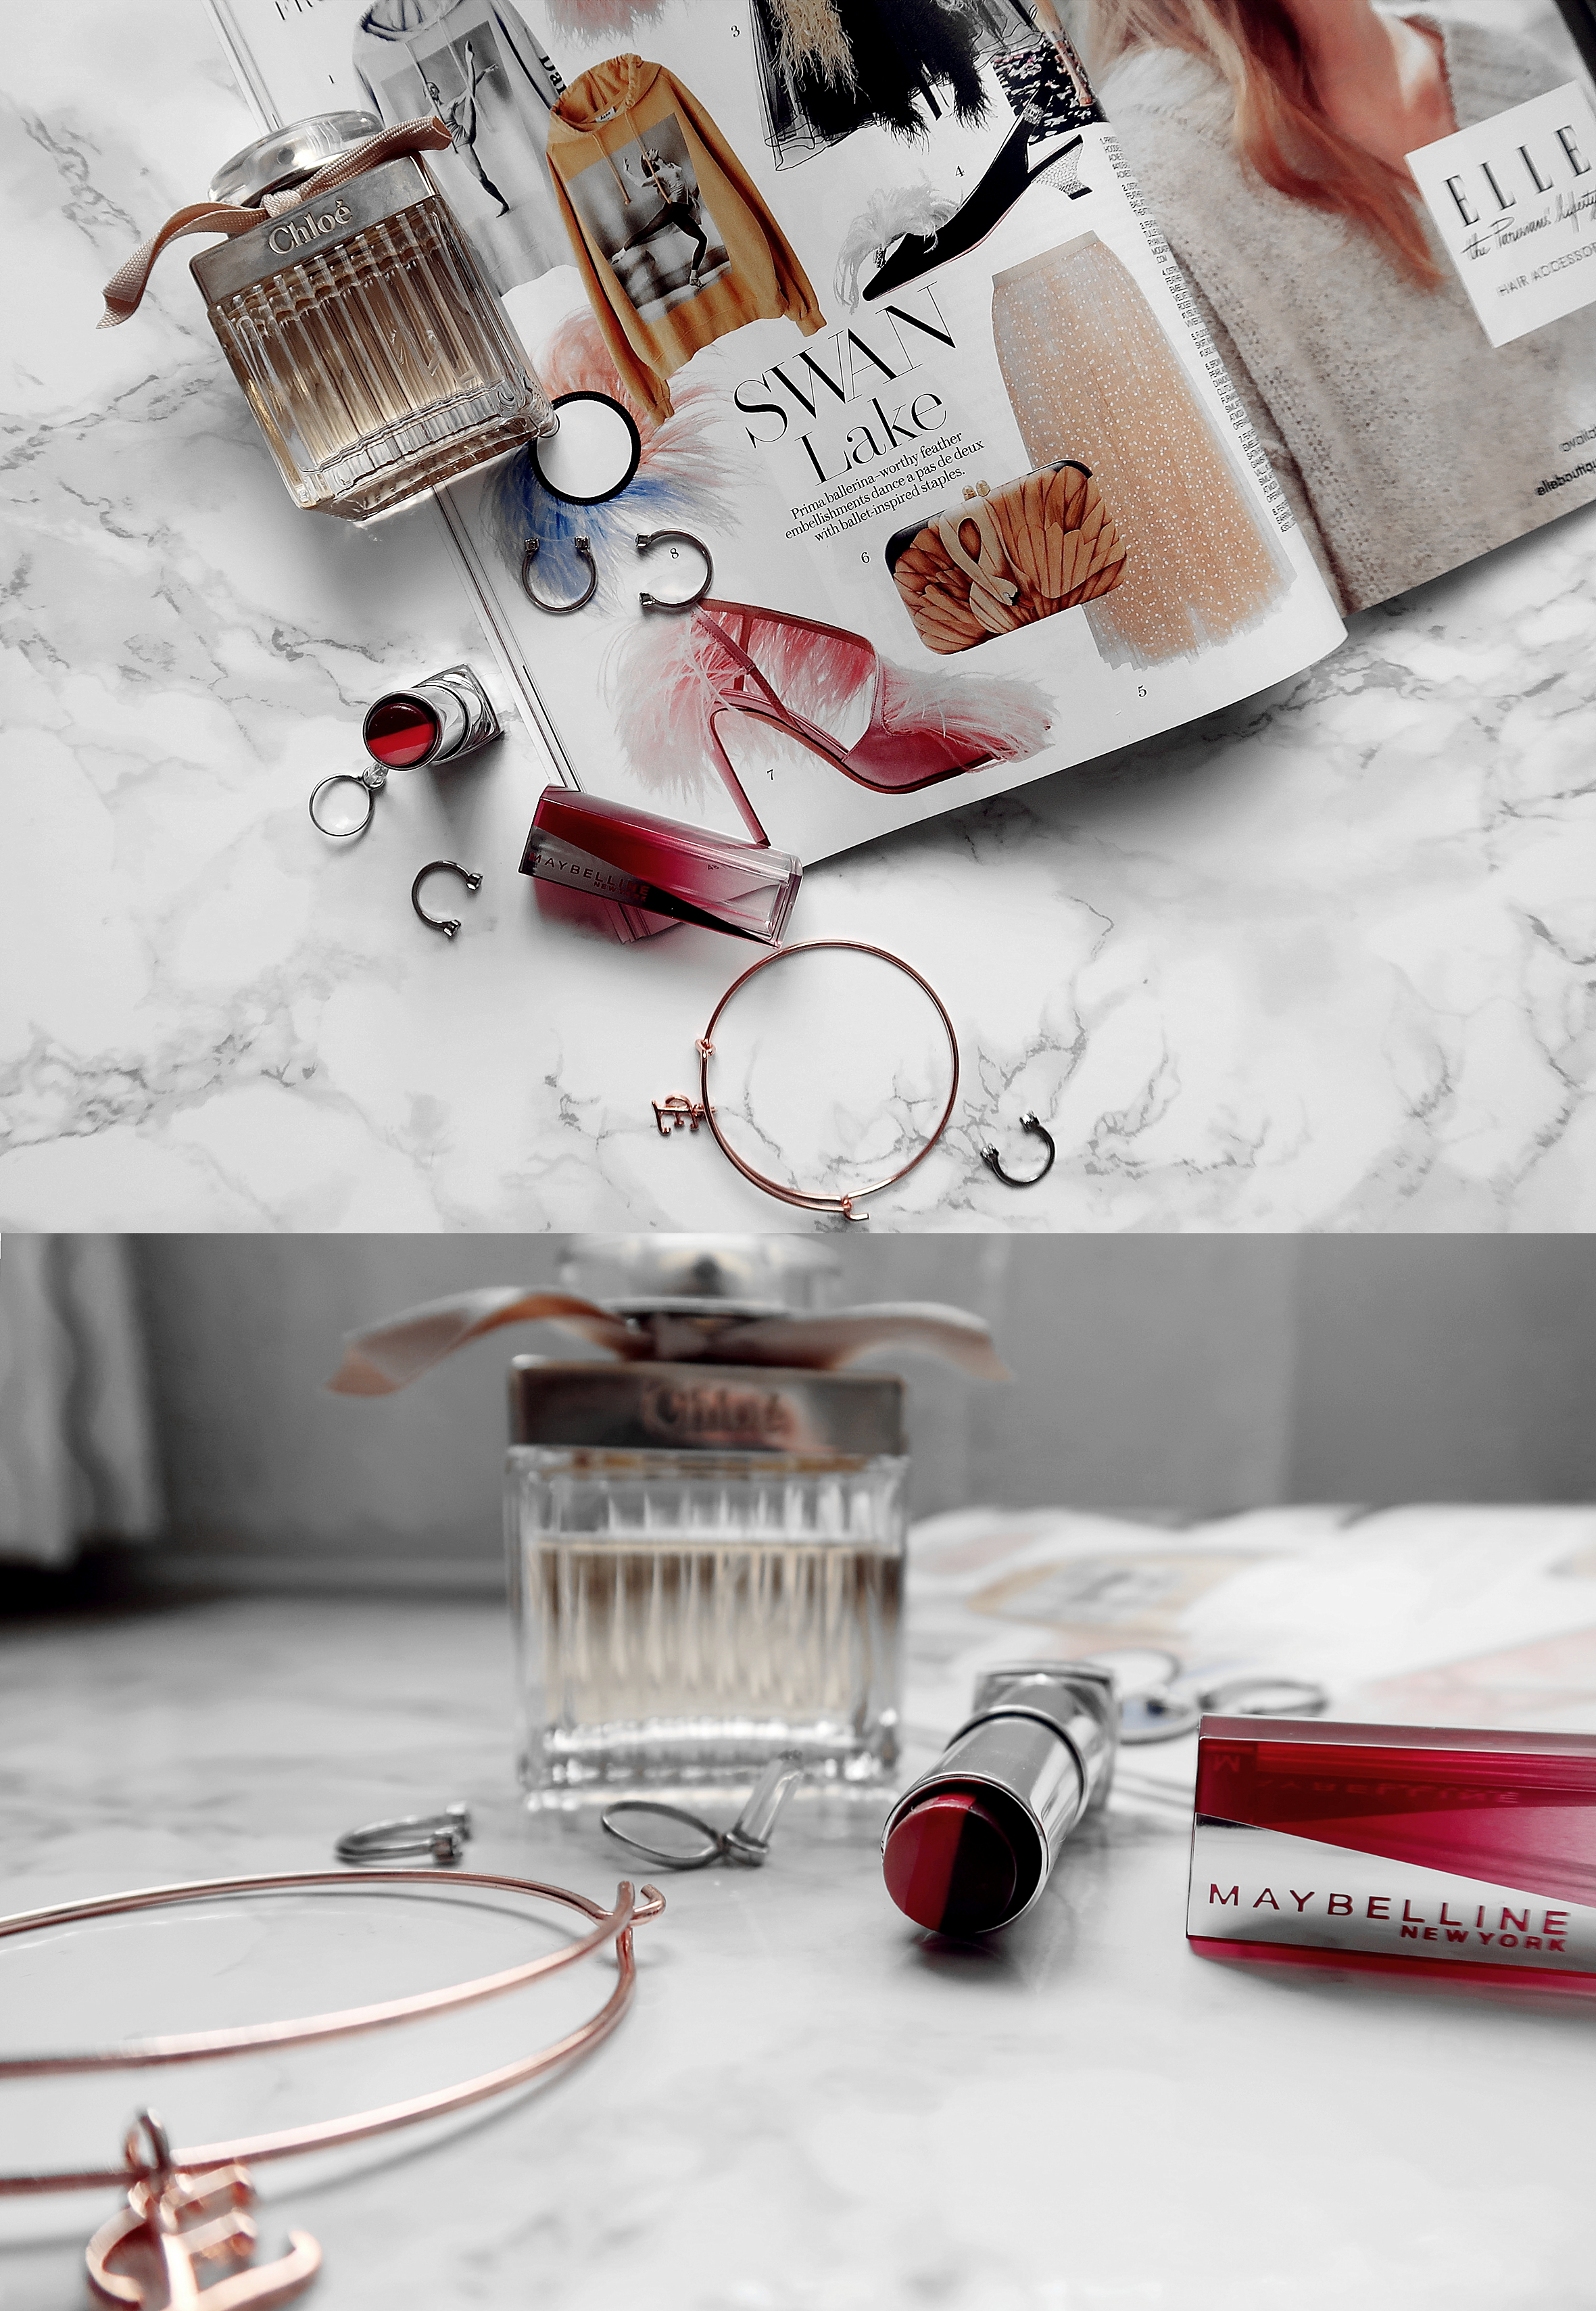 2-clothestoyouuu-itselizabethtran-monthlyfavorites-maybelline-koreanmakeup-makeup-beauty